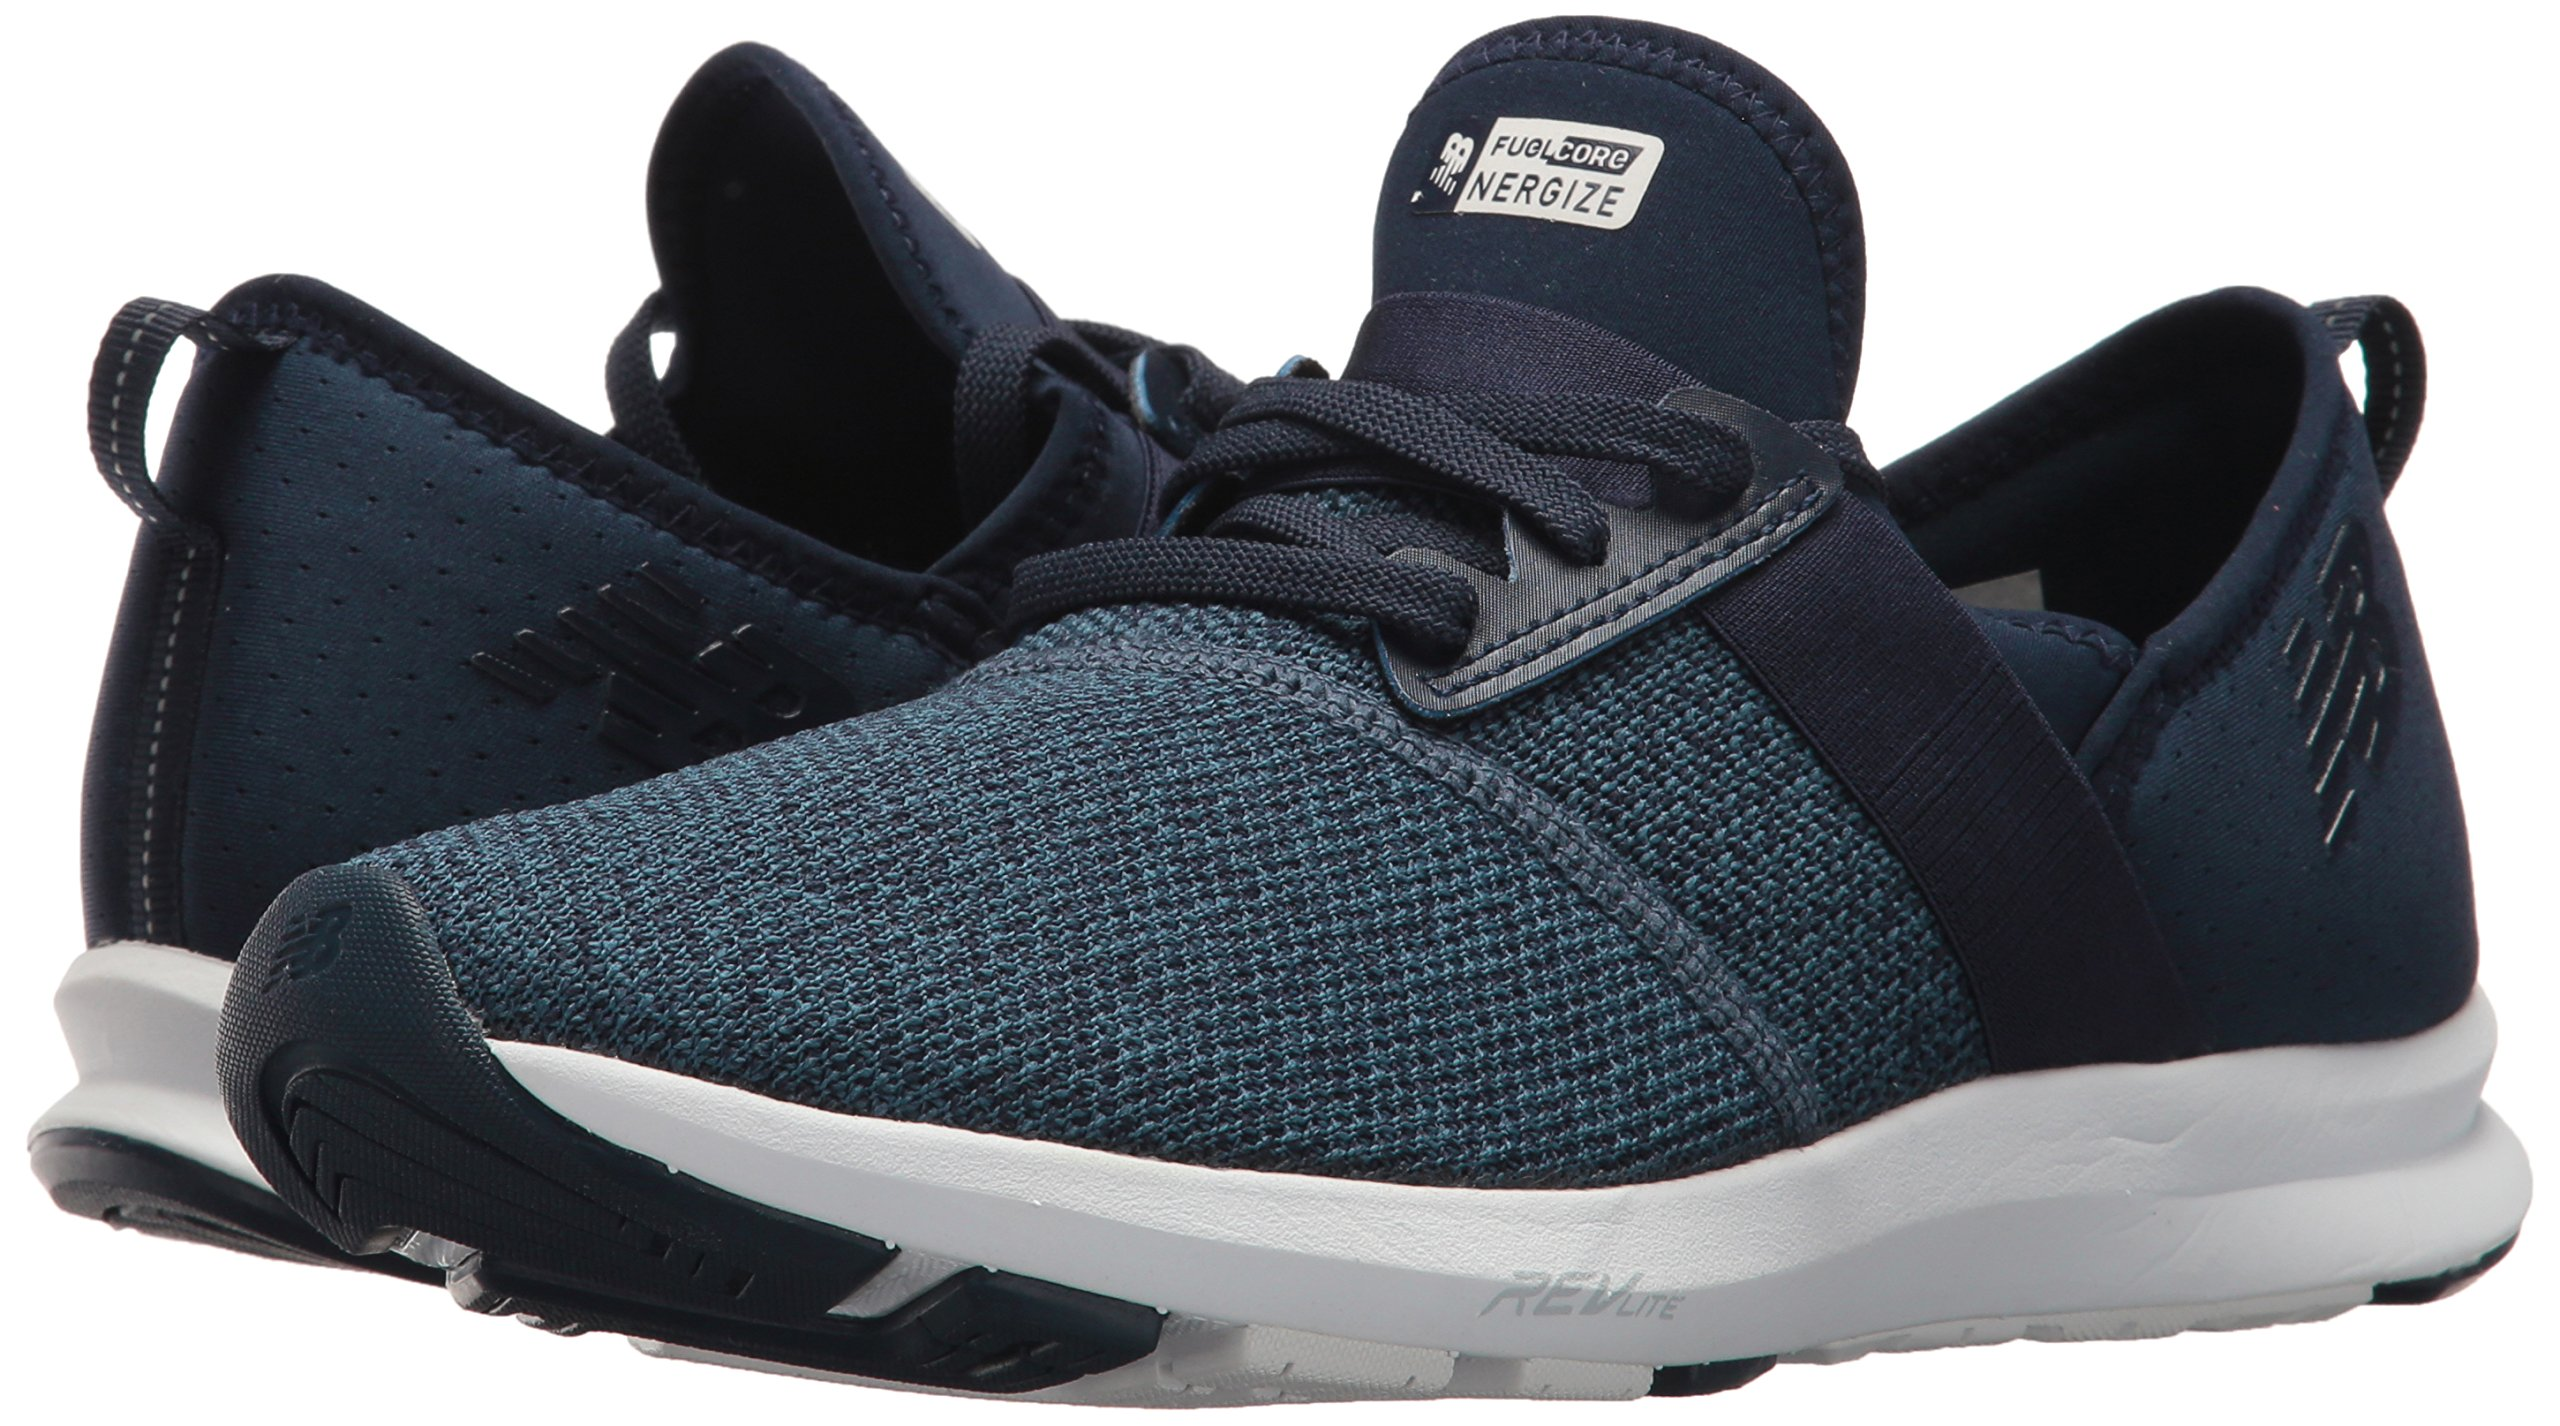 New Balance Women's FuelCore Nergize v1 FuelCore Training Shoe, Navy, 8 D US by New Balance (Image #6)